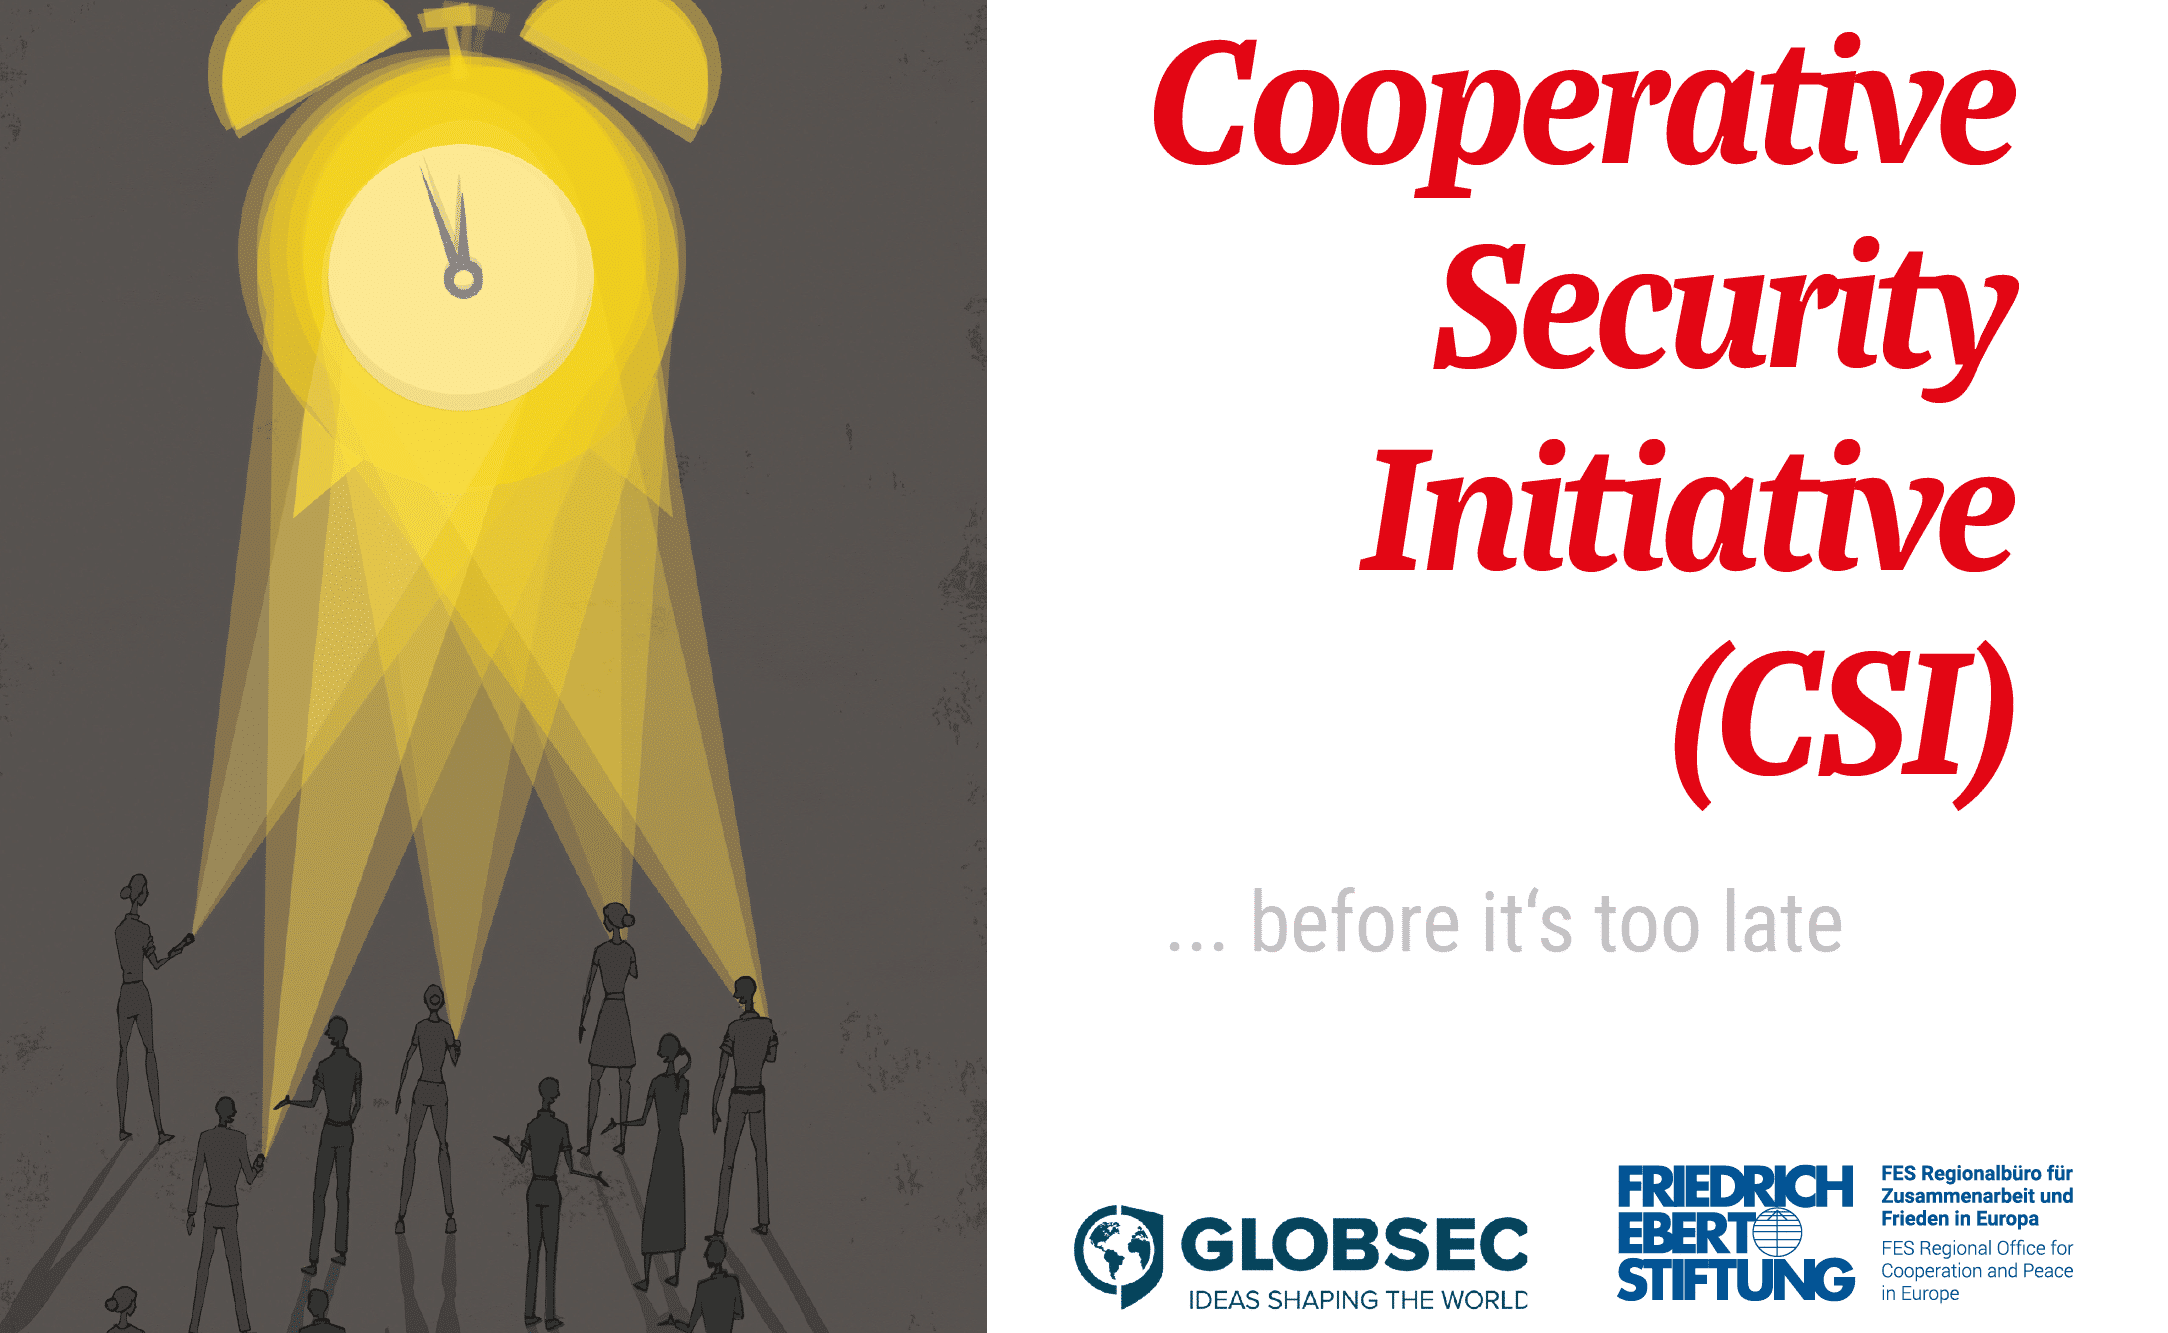 Cooperative Security Initiative - CSI